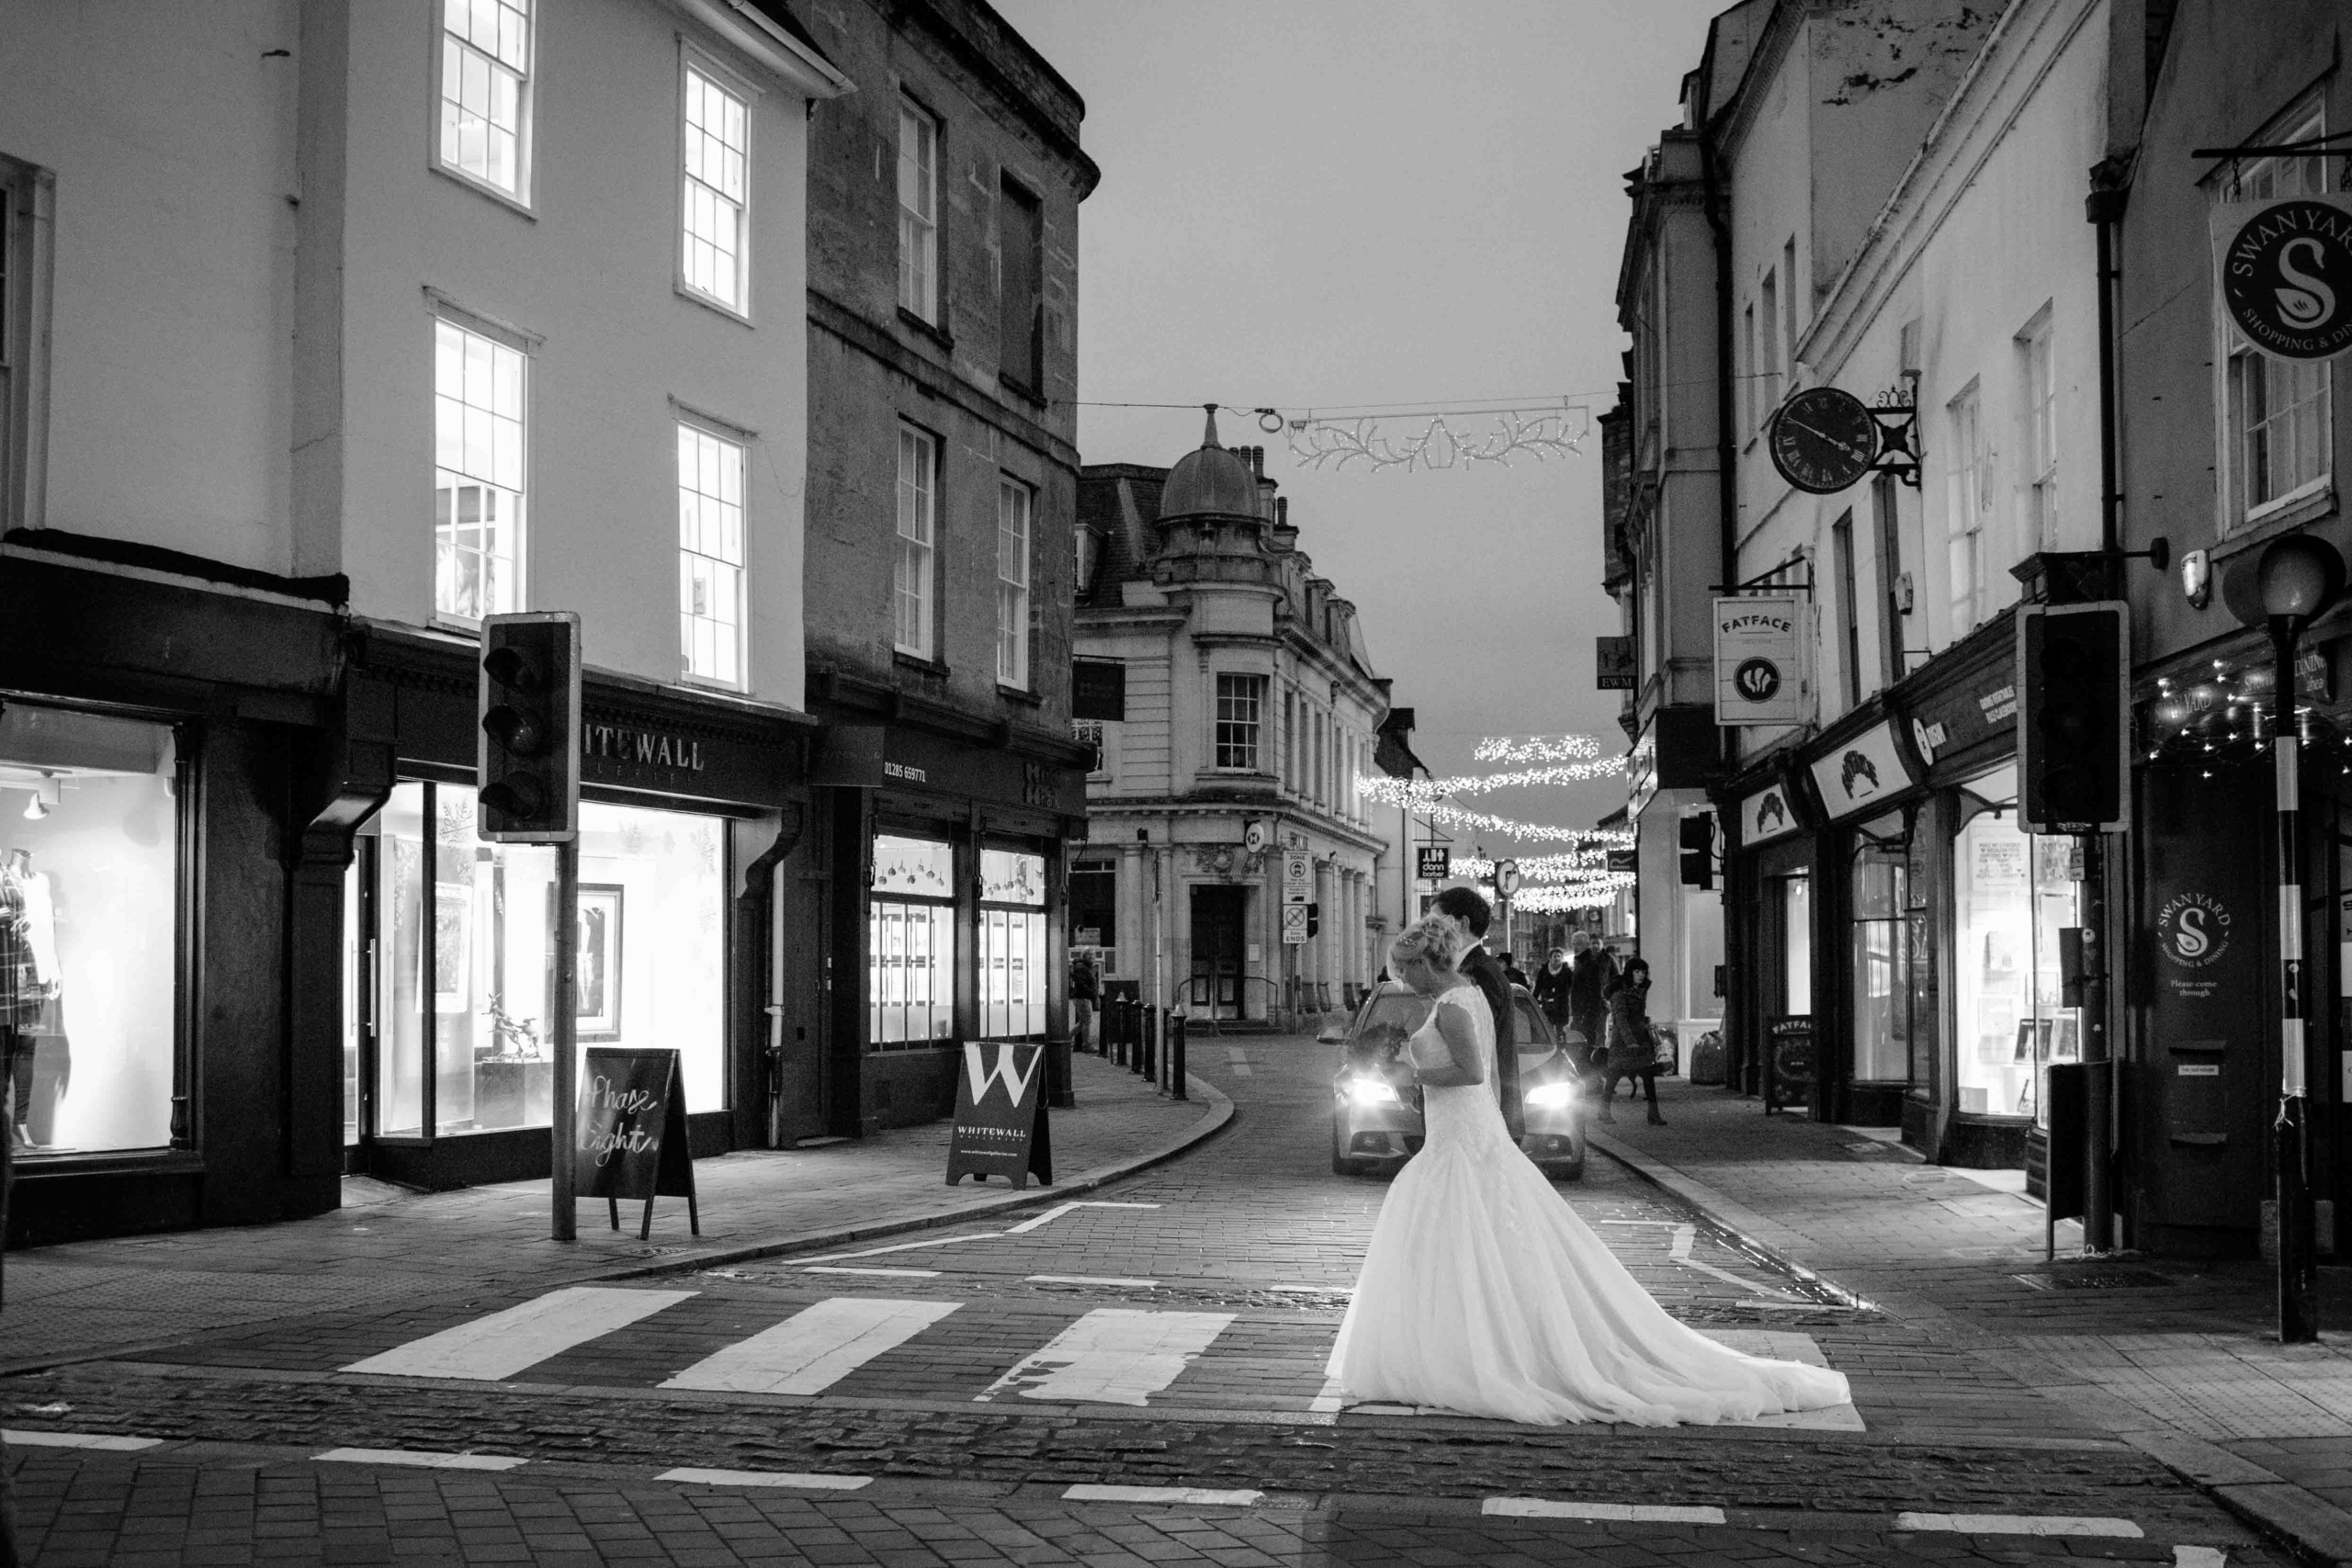 Cotswolds Wedding Photography, Bride and Groom holding hands walking across zebra crossing, Cirencester market square.